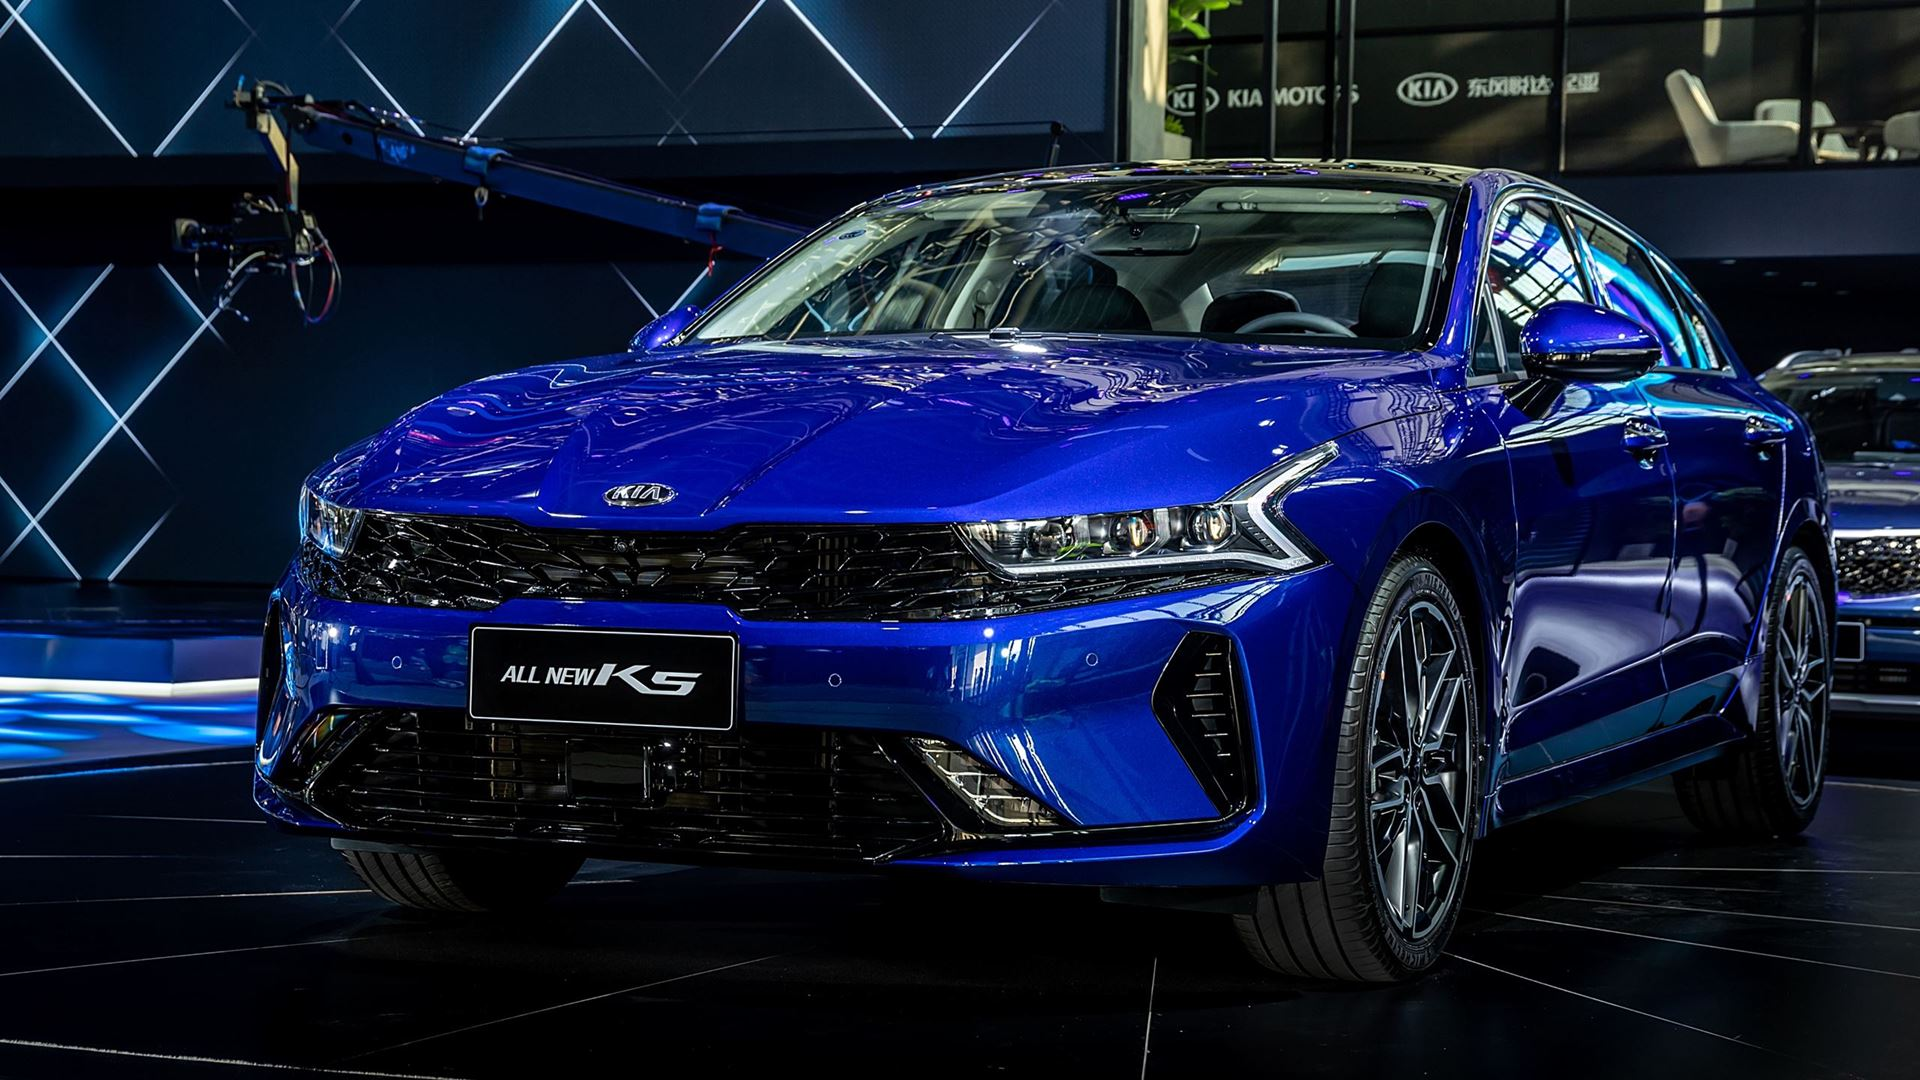 Kia Motors reveals new K5 and Carnival at Auto China 2020 - Image 2